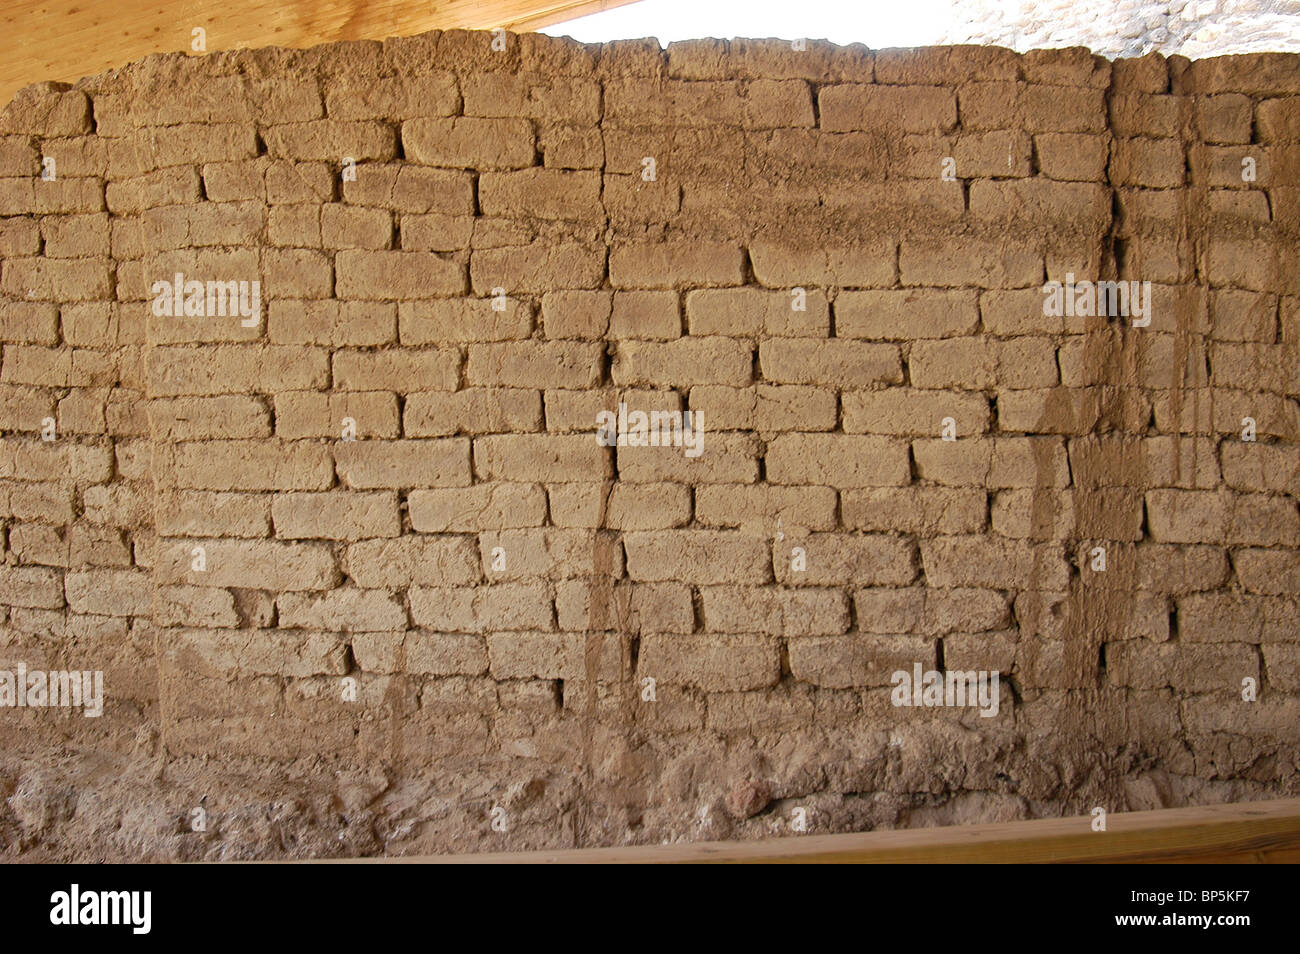 Ashkelon, the Canaanite gate. Mud bricks, section of the main city gate and towers of Canaanite Ashkelon, dating - Stock Image